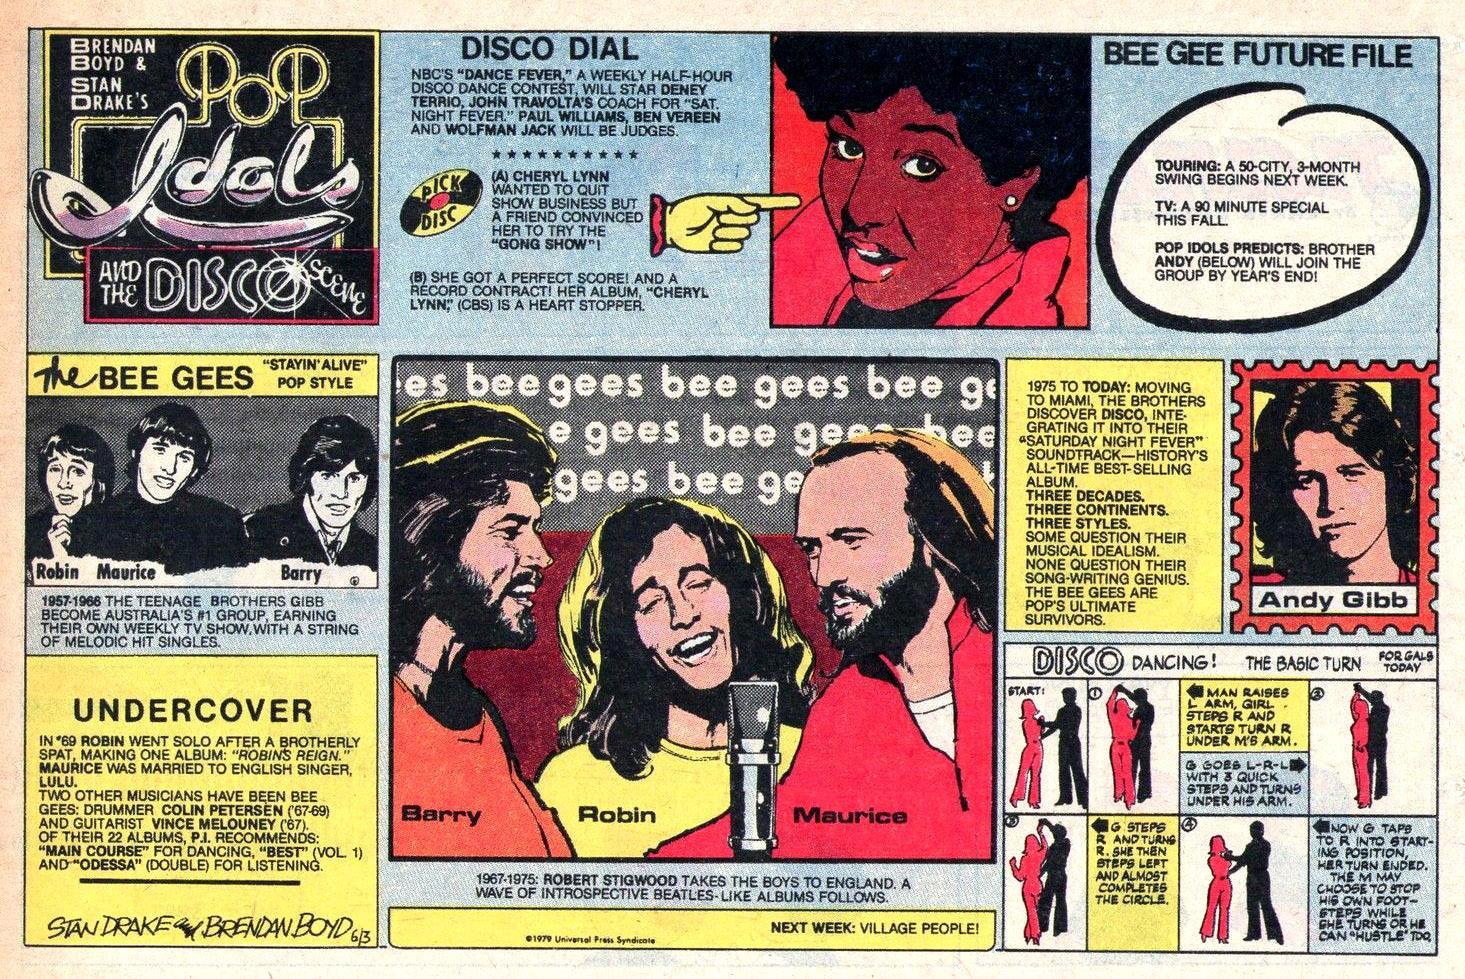 POP IDOLS AND THE DISCO SCENE Newspaper Strip Sunday June 3 1979